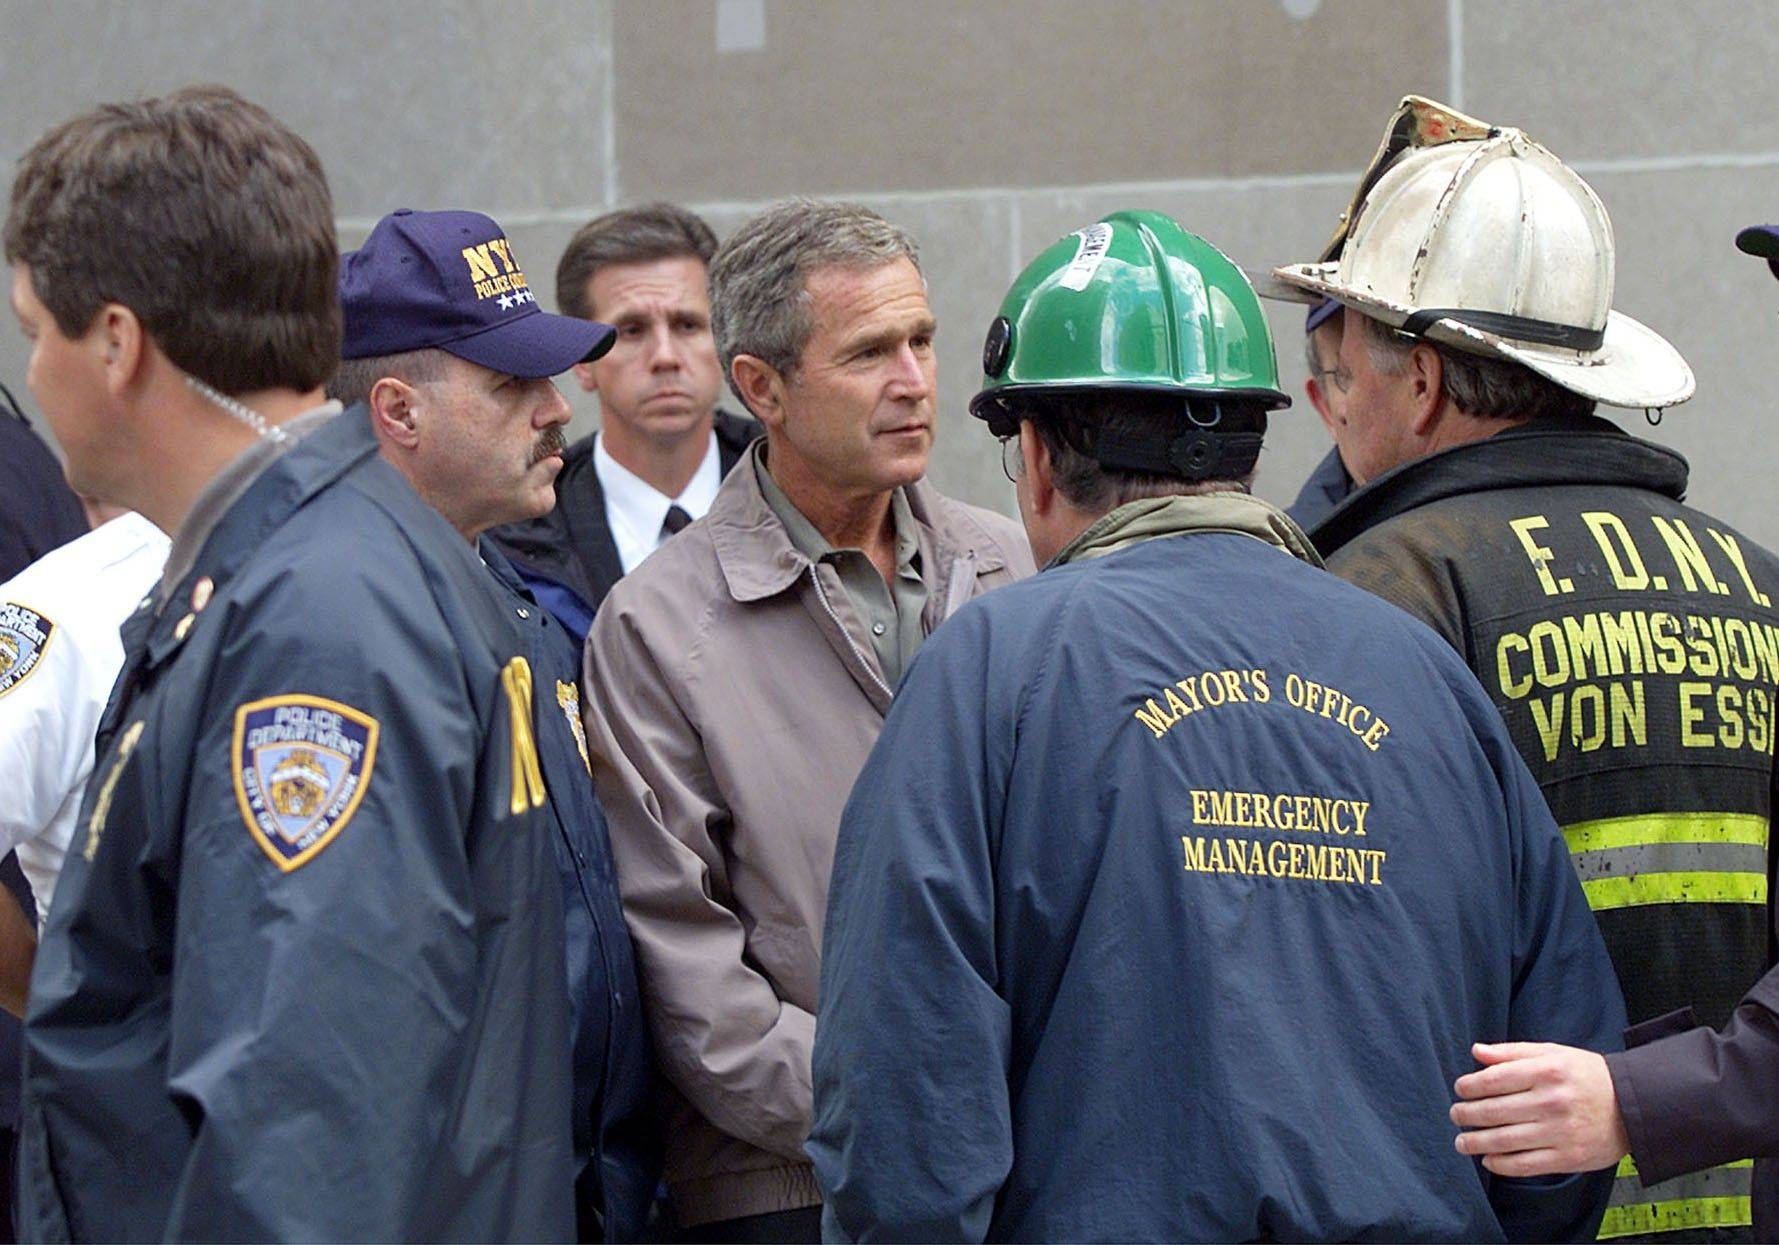 President George W. Bush talks to former New York City Fire Commissioner Thomas Van Essen, right, wearing helmet, during a tour of the World Trade Center in New York.